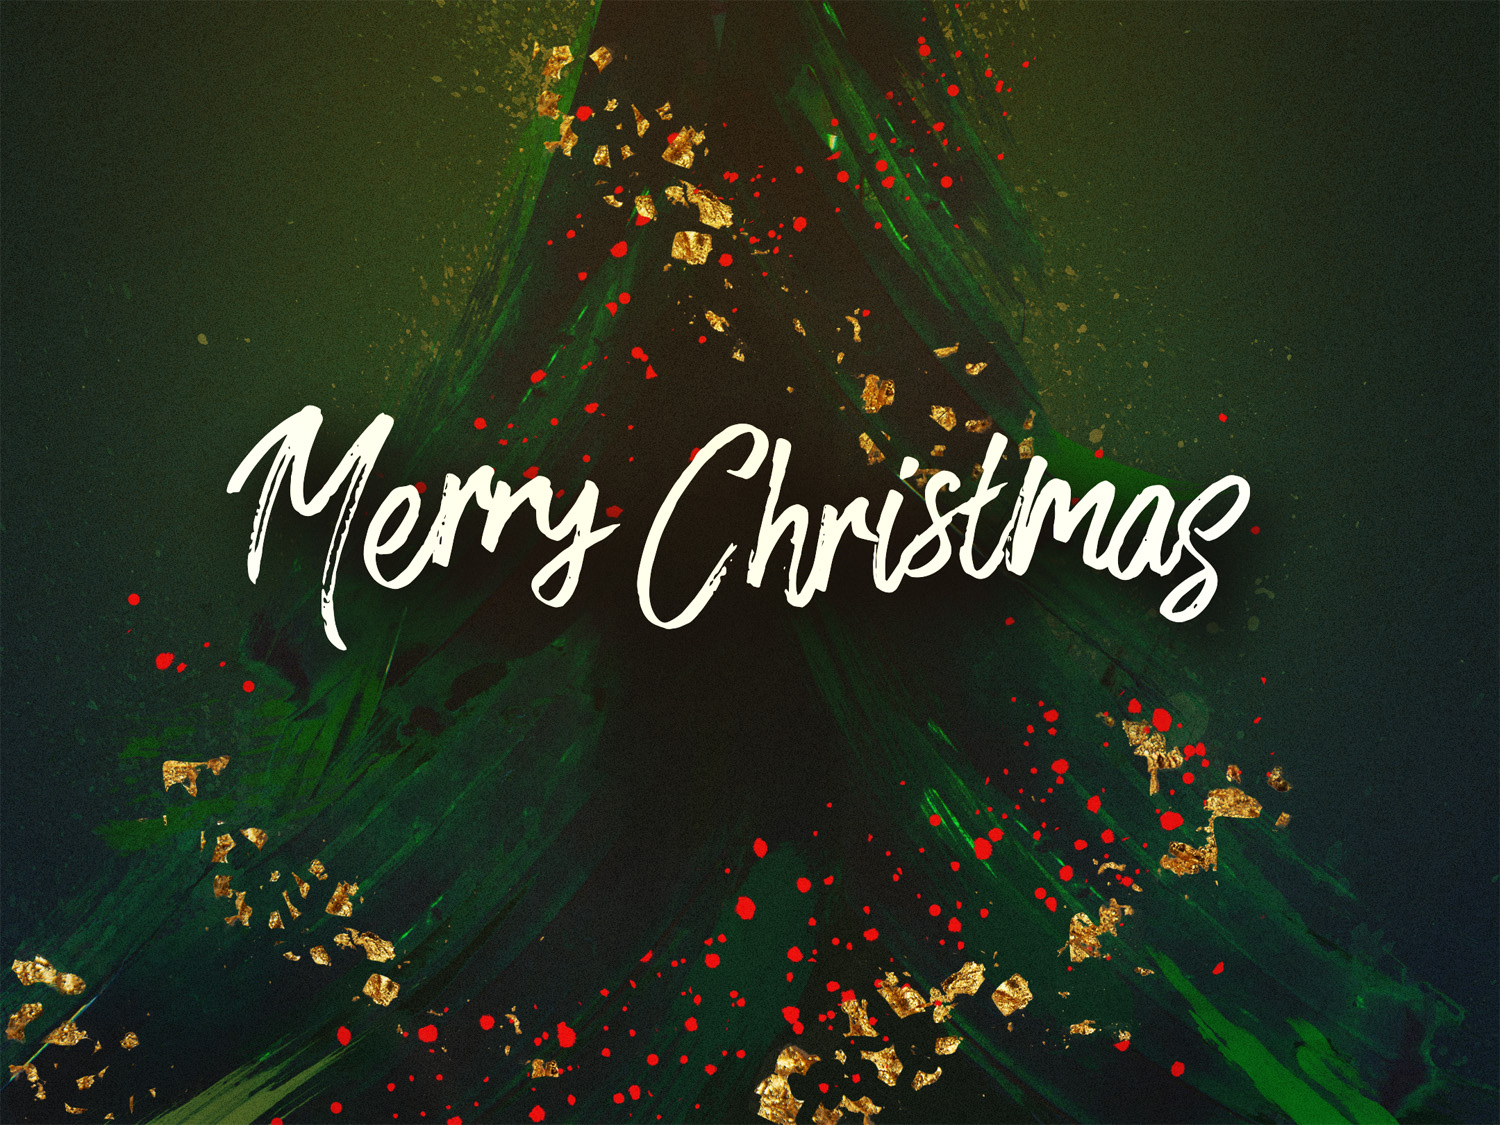 merry_christmas-title-2-Standard 4x3.jpg